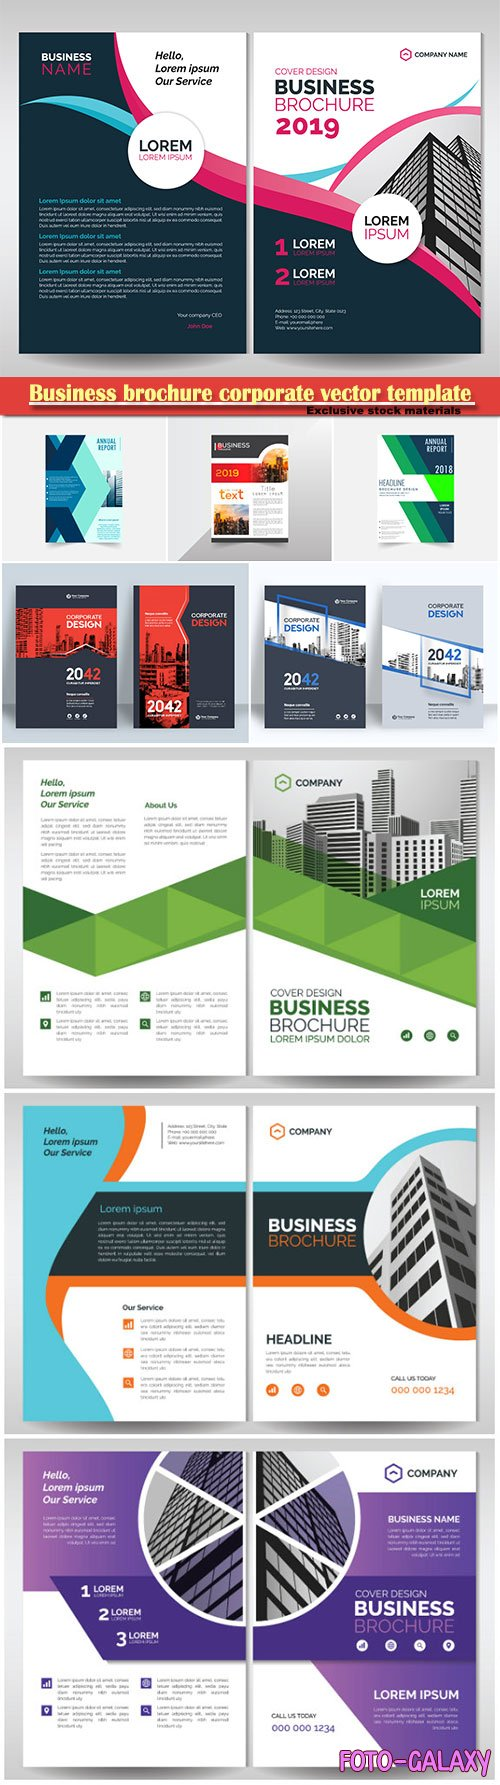 Business brochure corporate vector template, magazine flyer mockup # 55